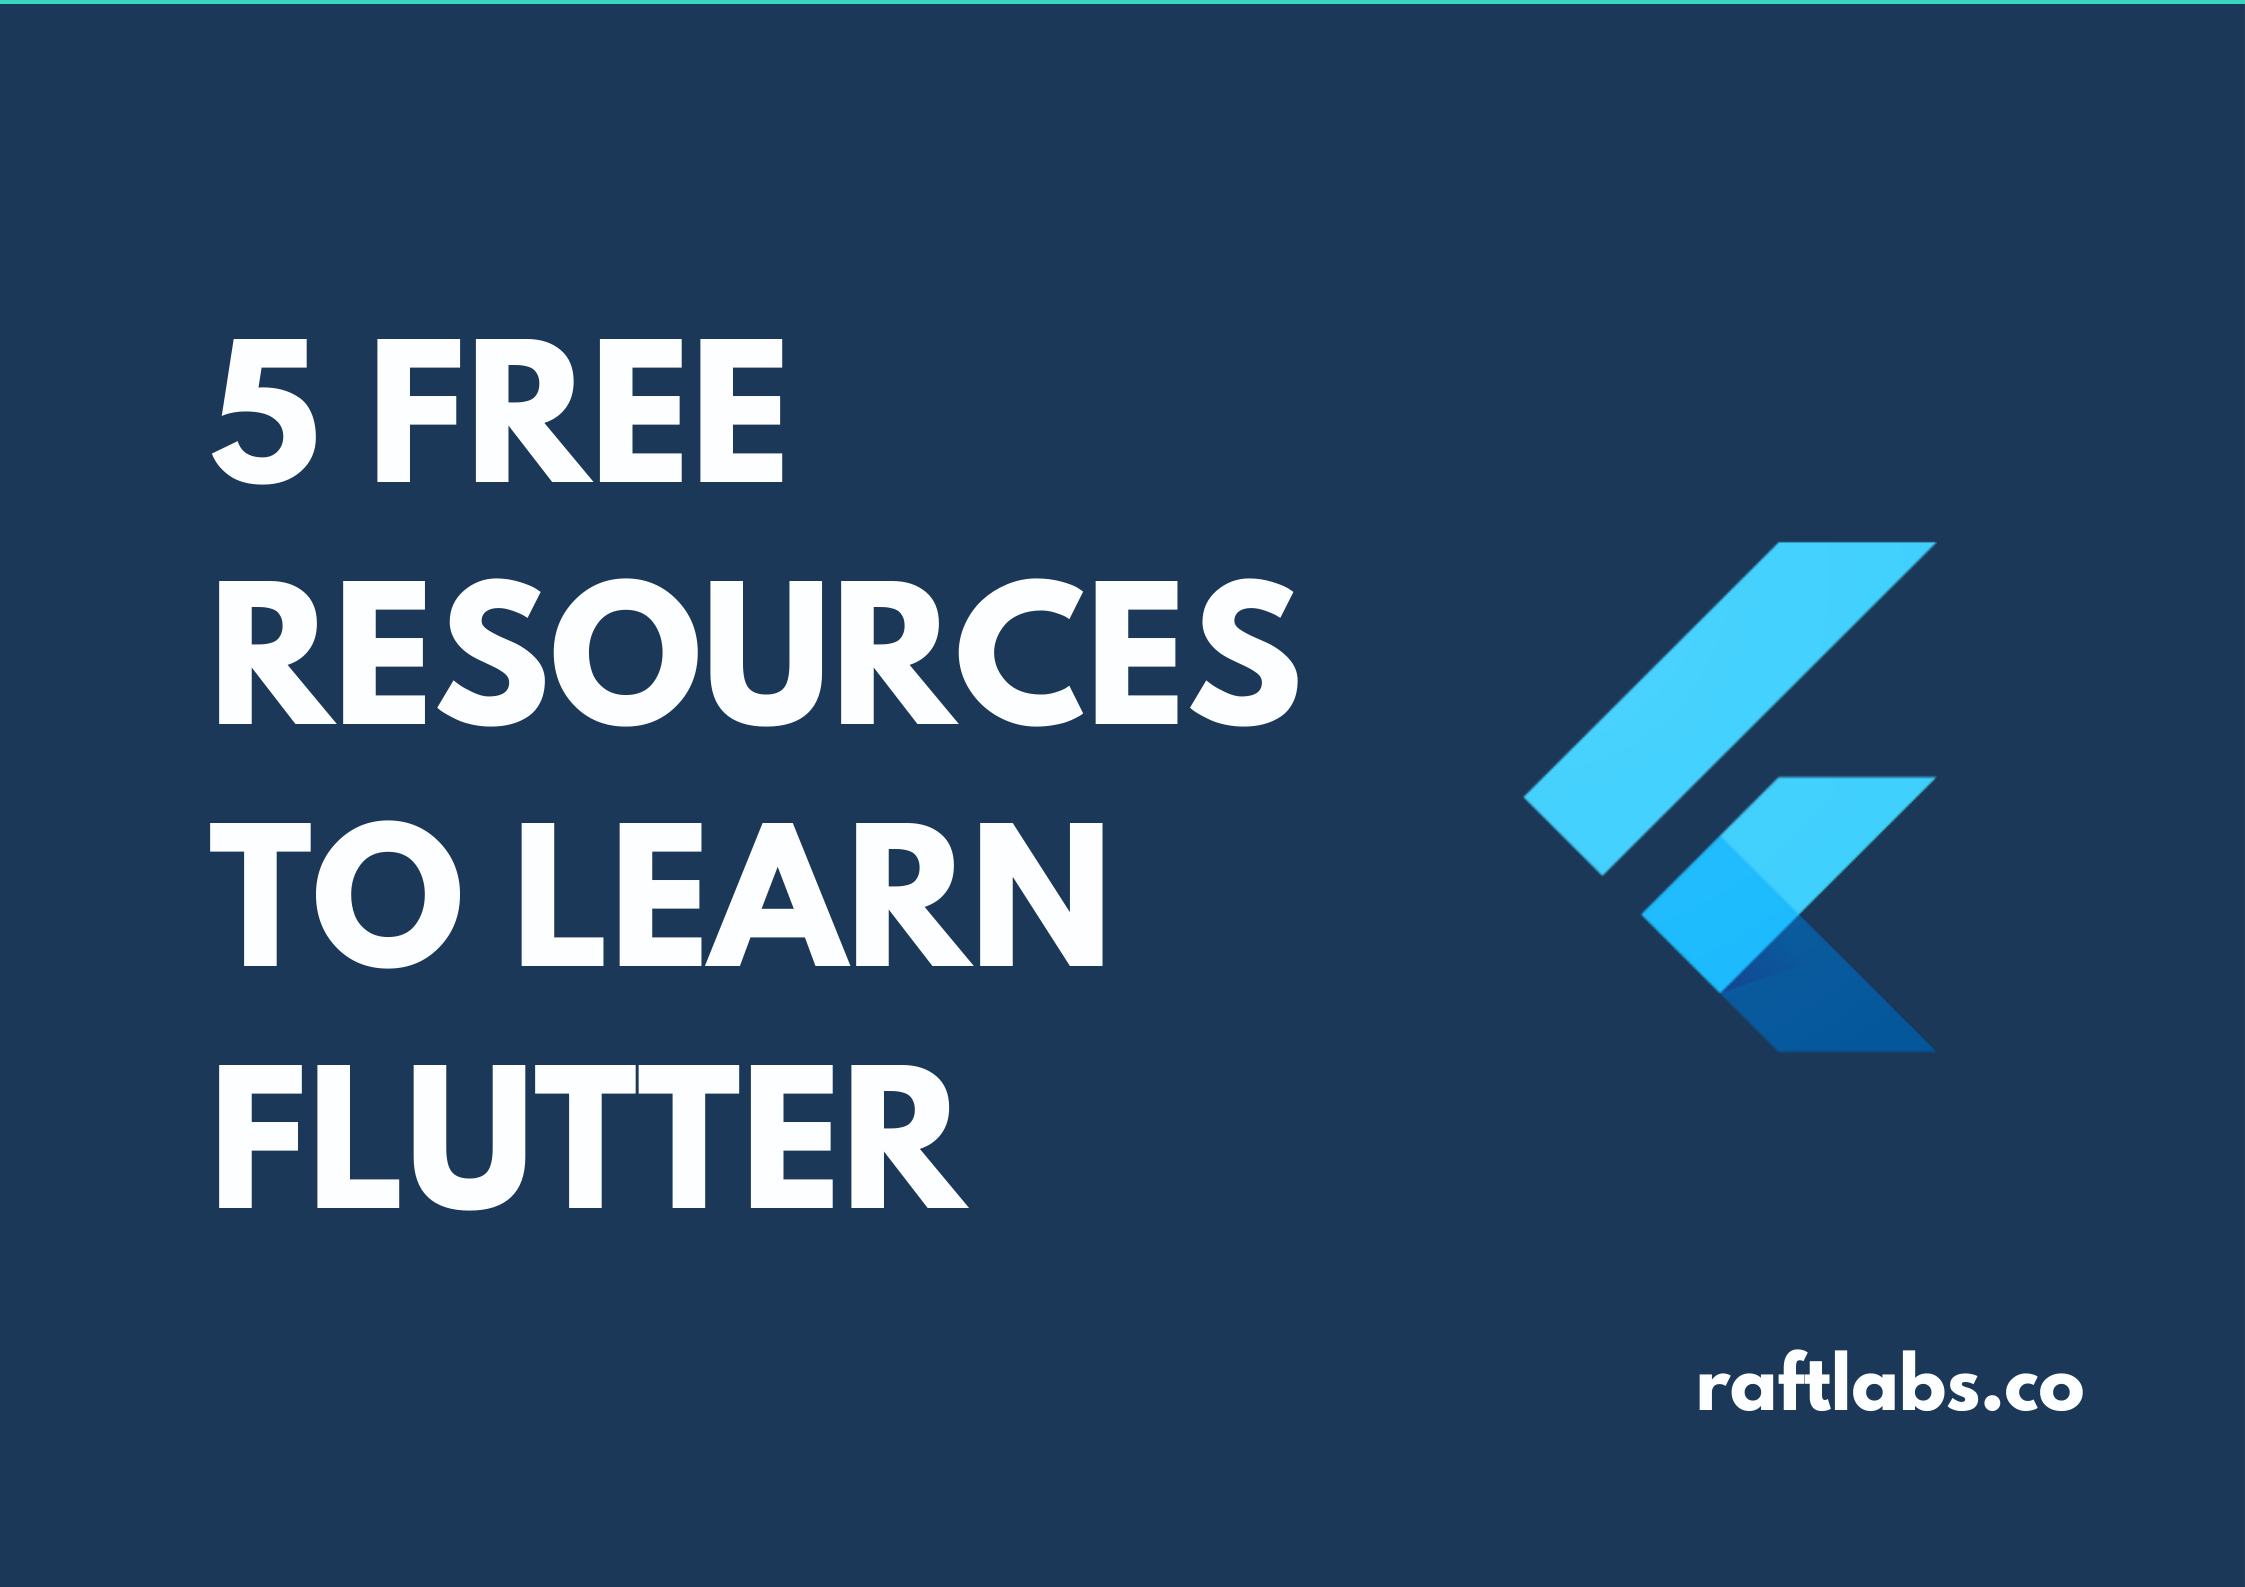 5 Free Resources to learn Flutter with Flutter logo - raftlabs.co